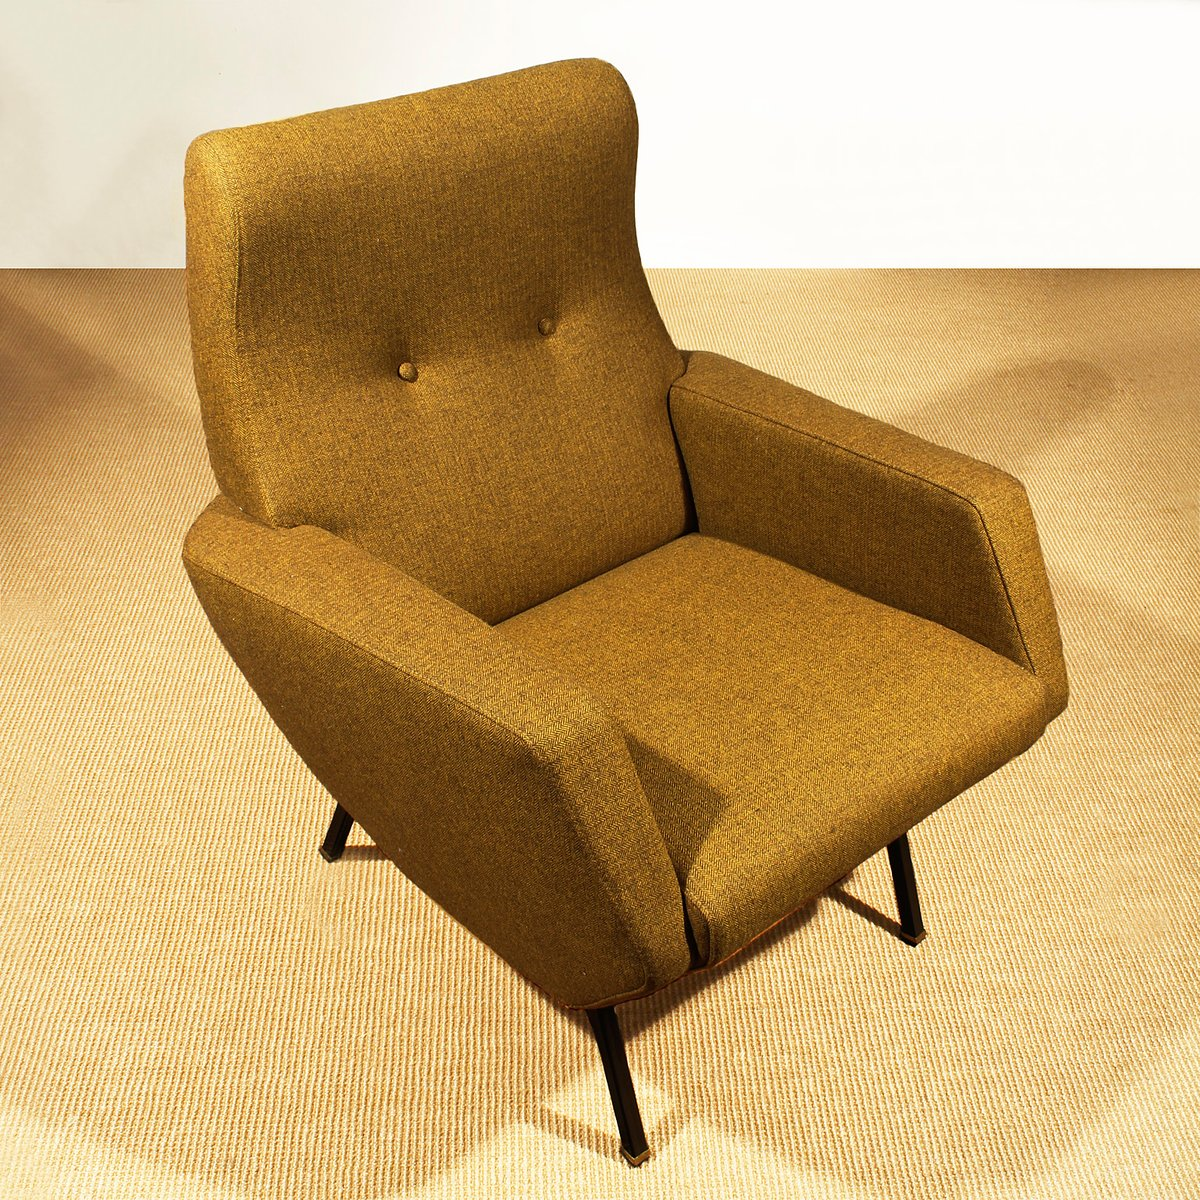 Mustard italian armchairs 1960s set of 2 for sale at pamono for 2 armchairs for sale